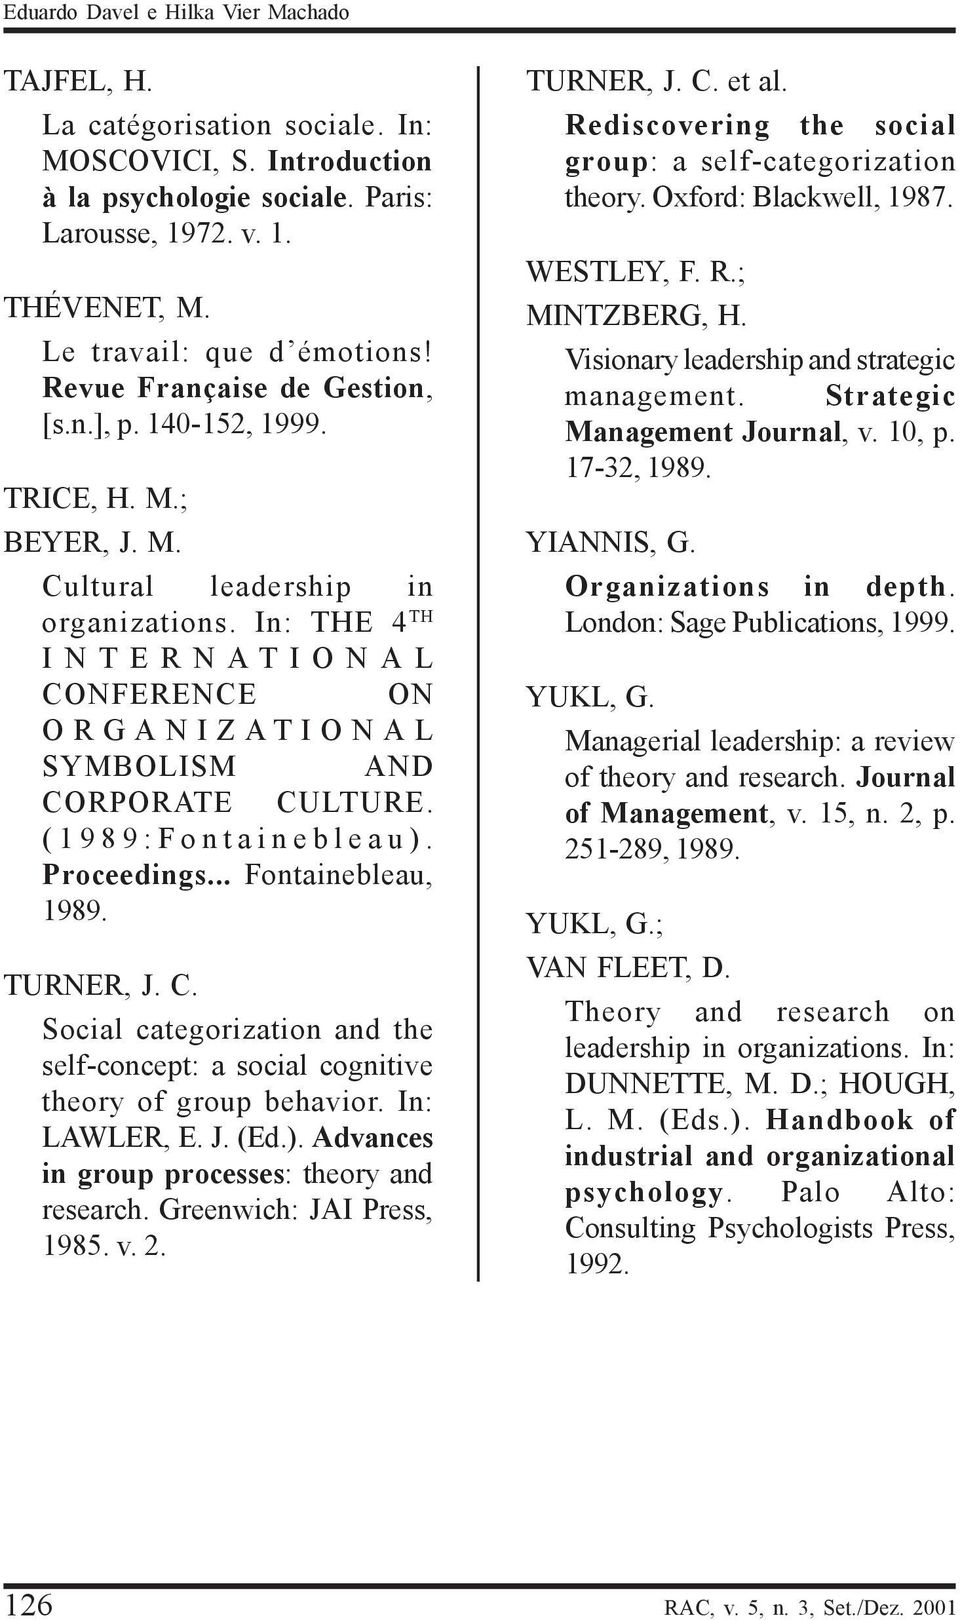 In: THE 4 TH INTERNATIONAL CONFERENCE ON ORGANIZATIONAL SYMBOLISM AND CORPORATE CULTURE. (1989:Fontainebleau). Proceedings... Fontainebleau, 1989. TURNER, J. C. Social categorization and the self-concept: a social cognitive theory of group behavior.